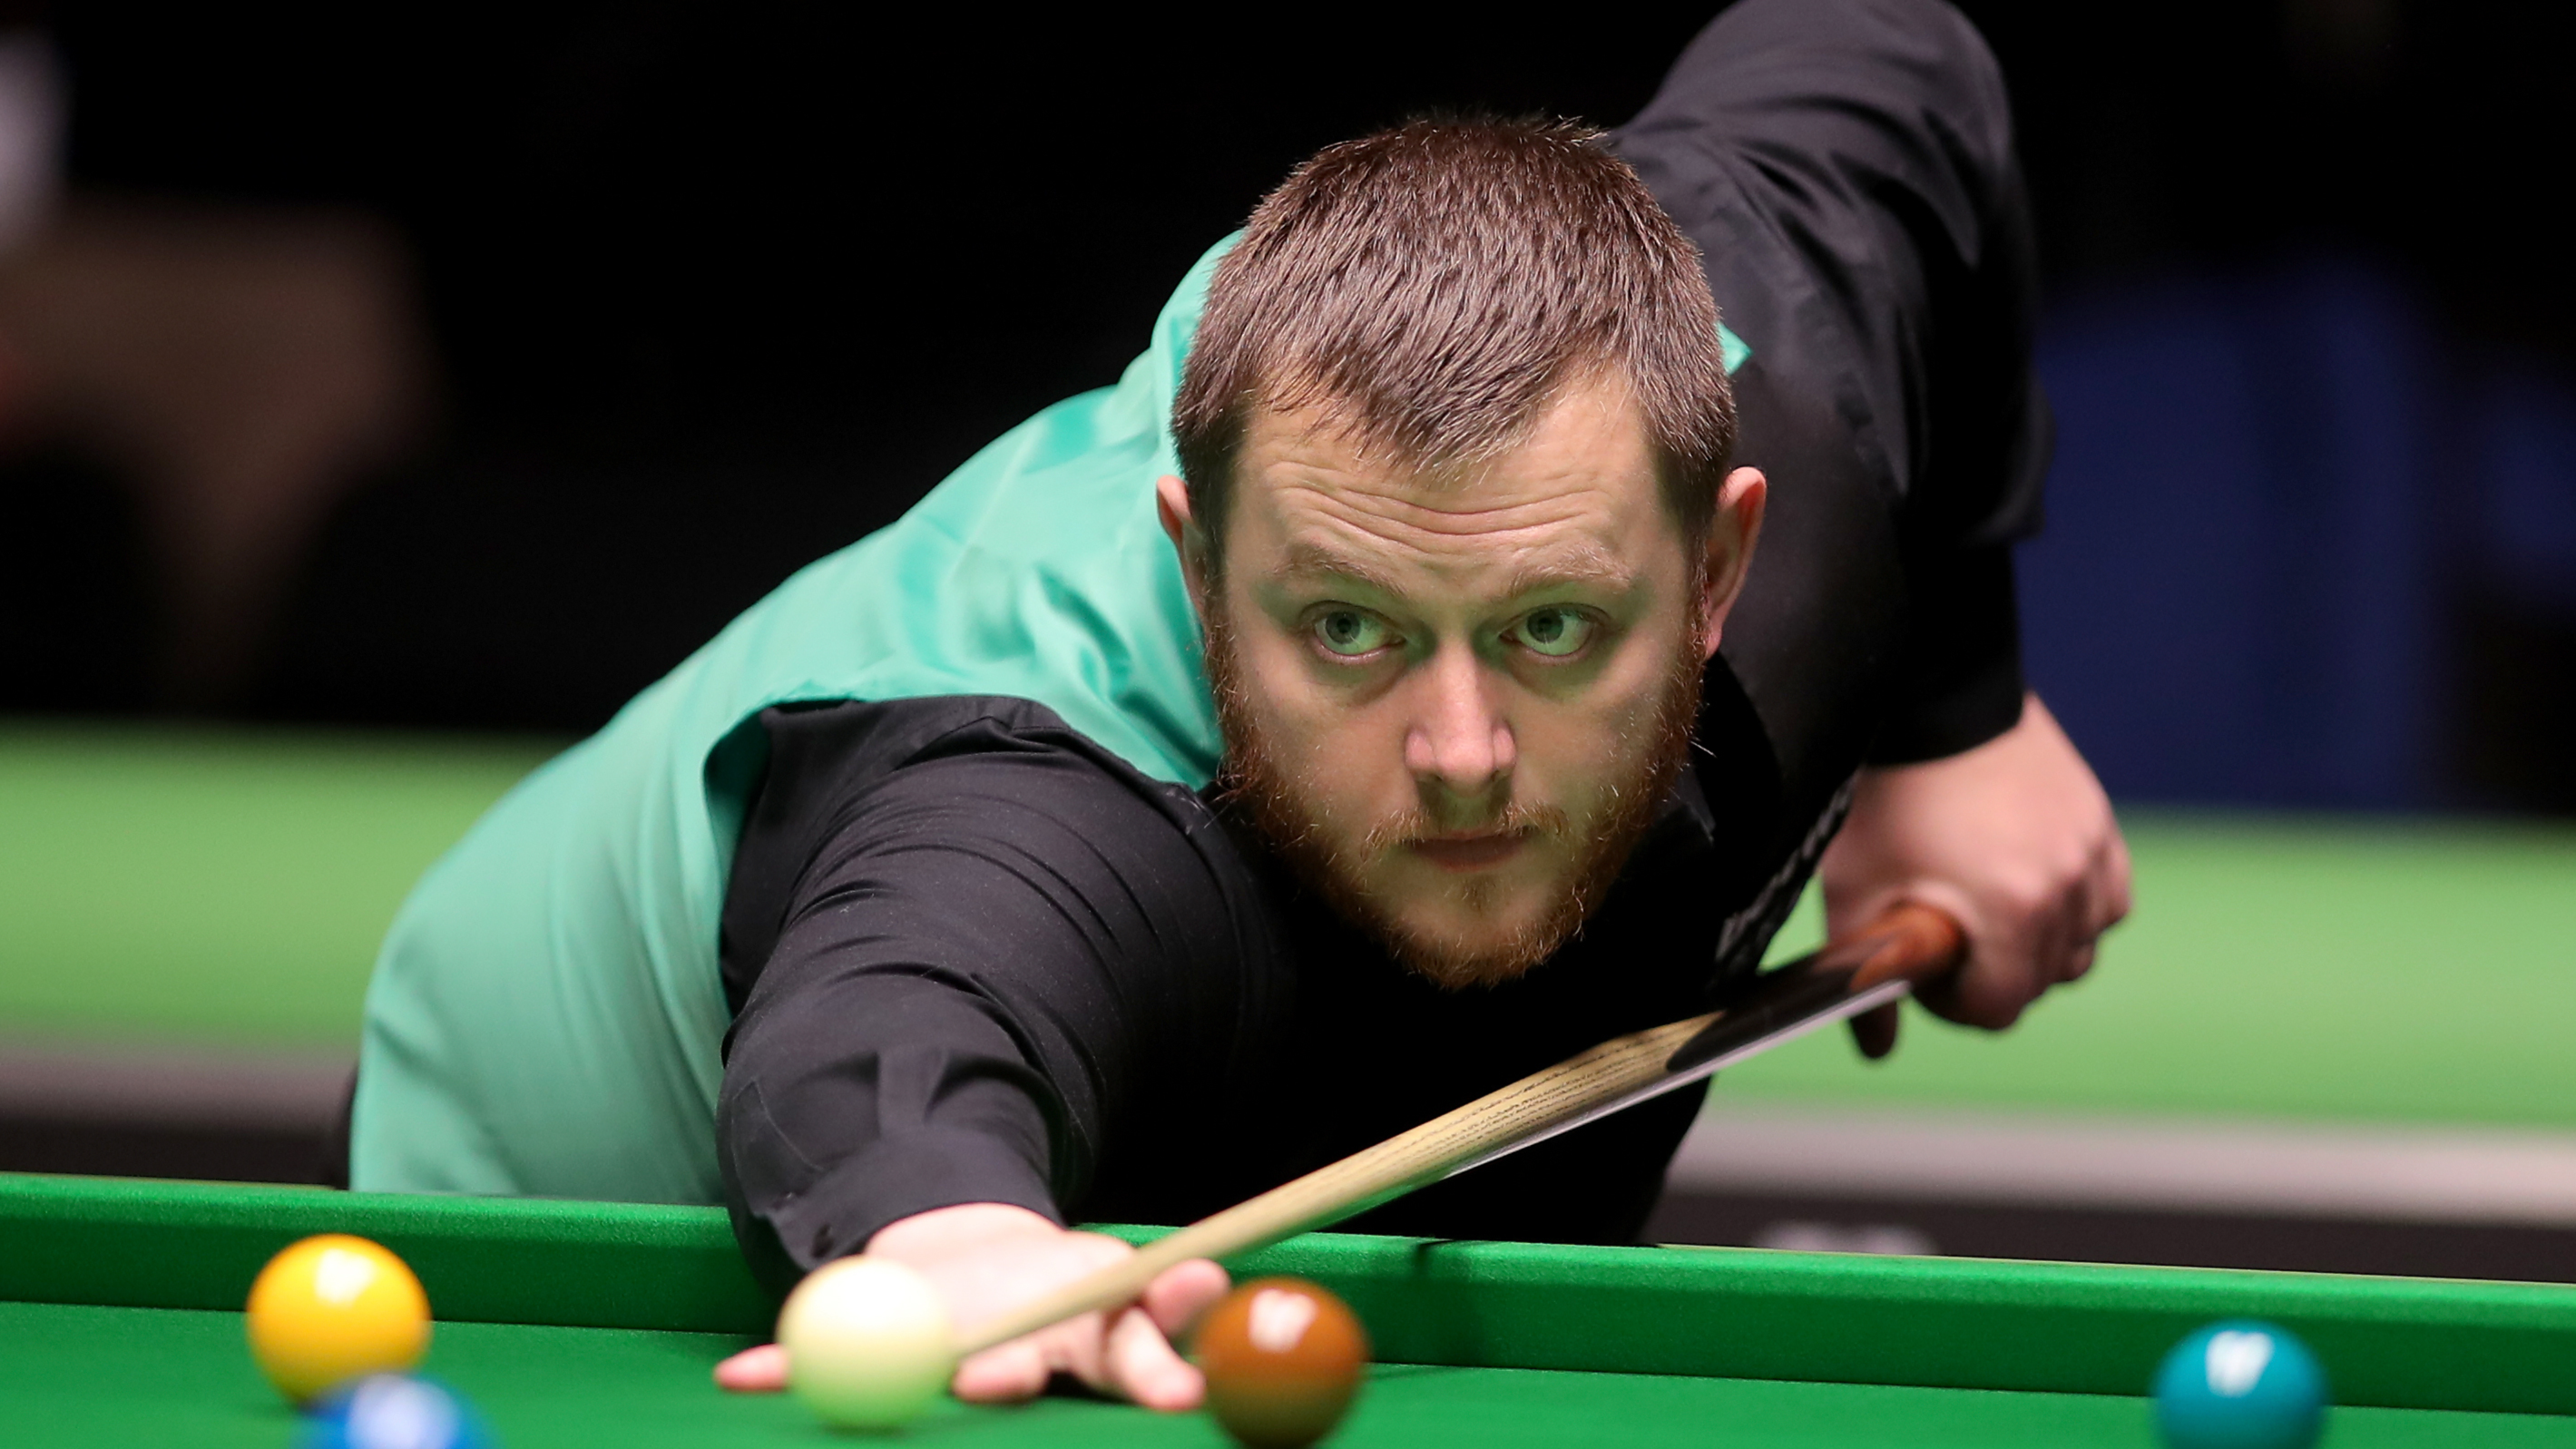 Loud 'Sex Noise' Interrupts UK Championship Snooker Match